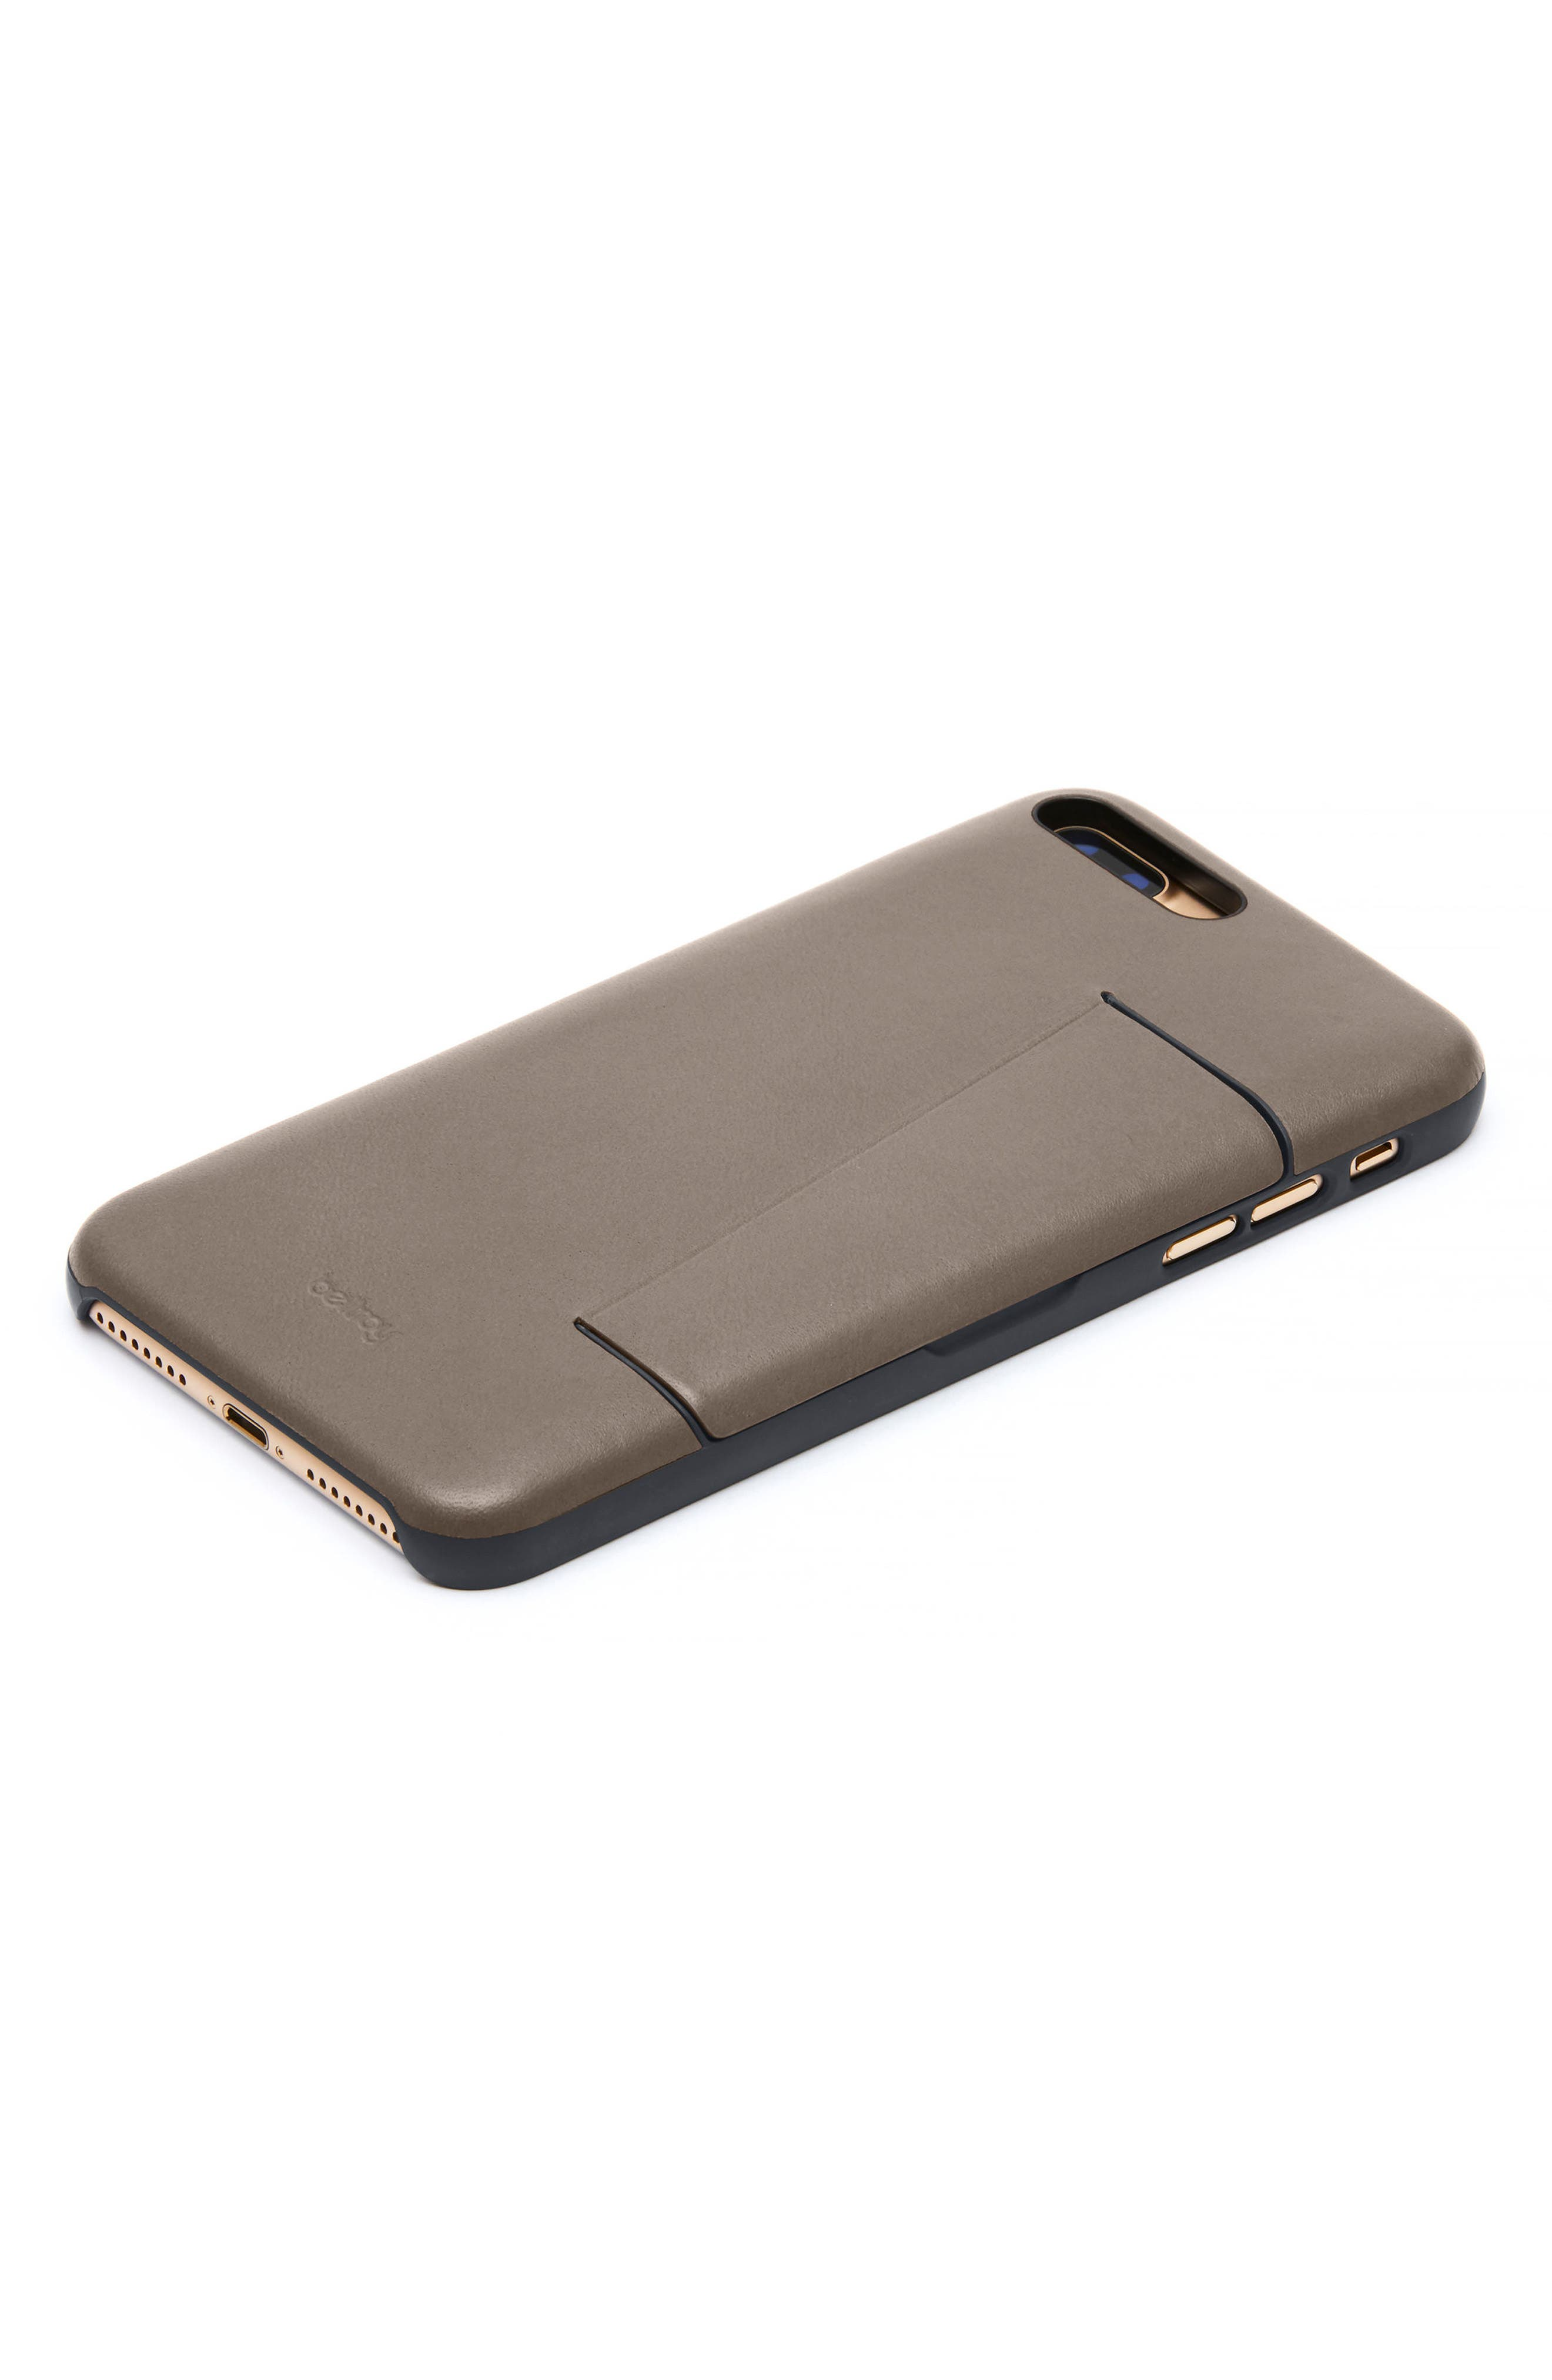 Bellroy iPhone 7 Plus/8 Plus Case with Card Slots